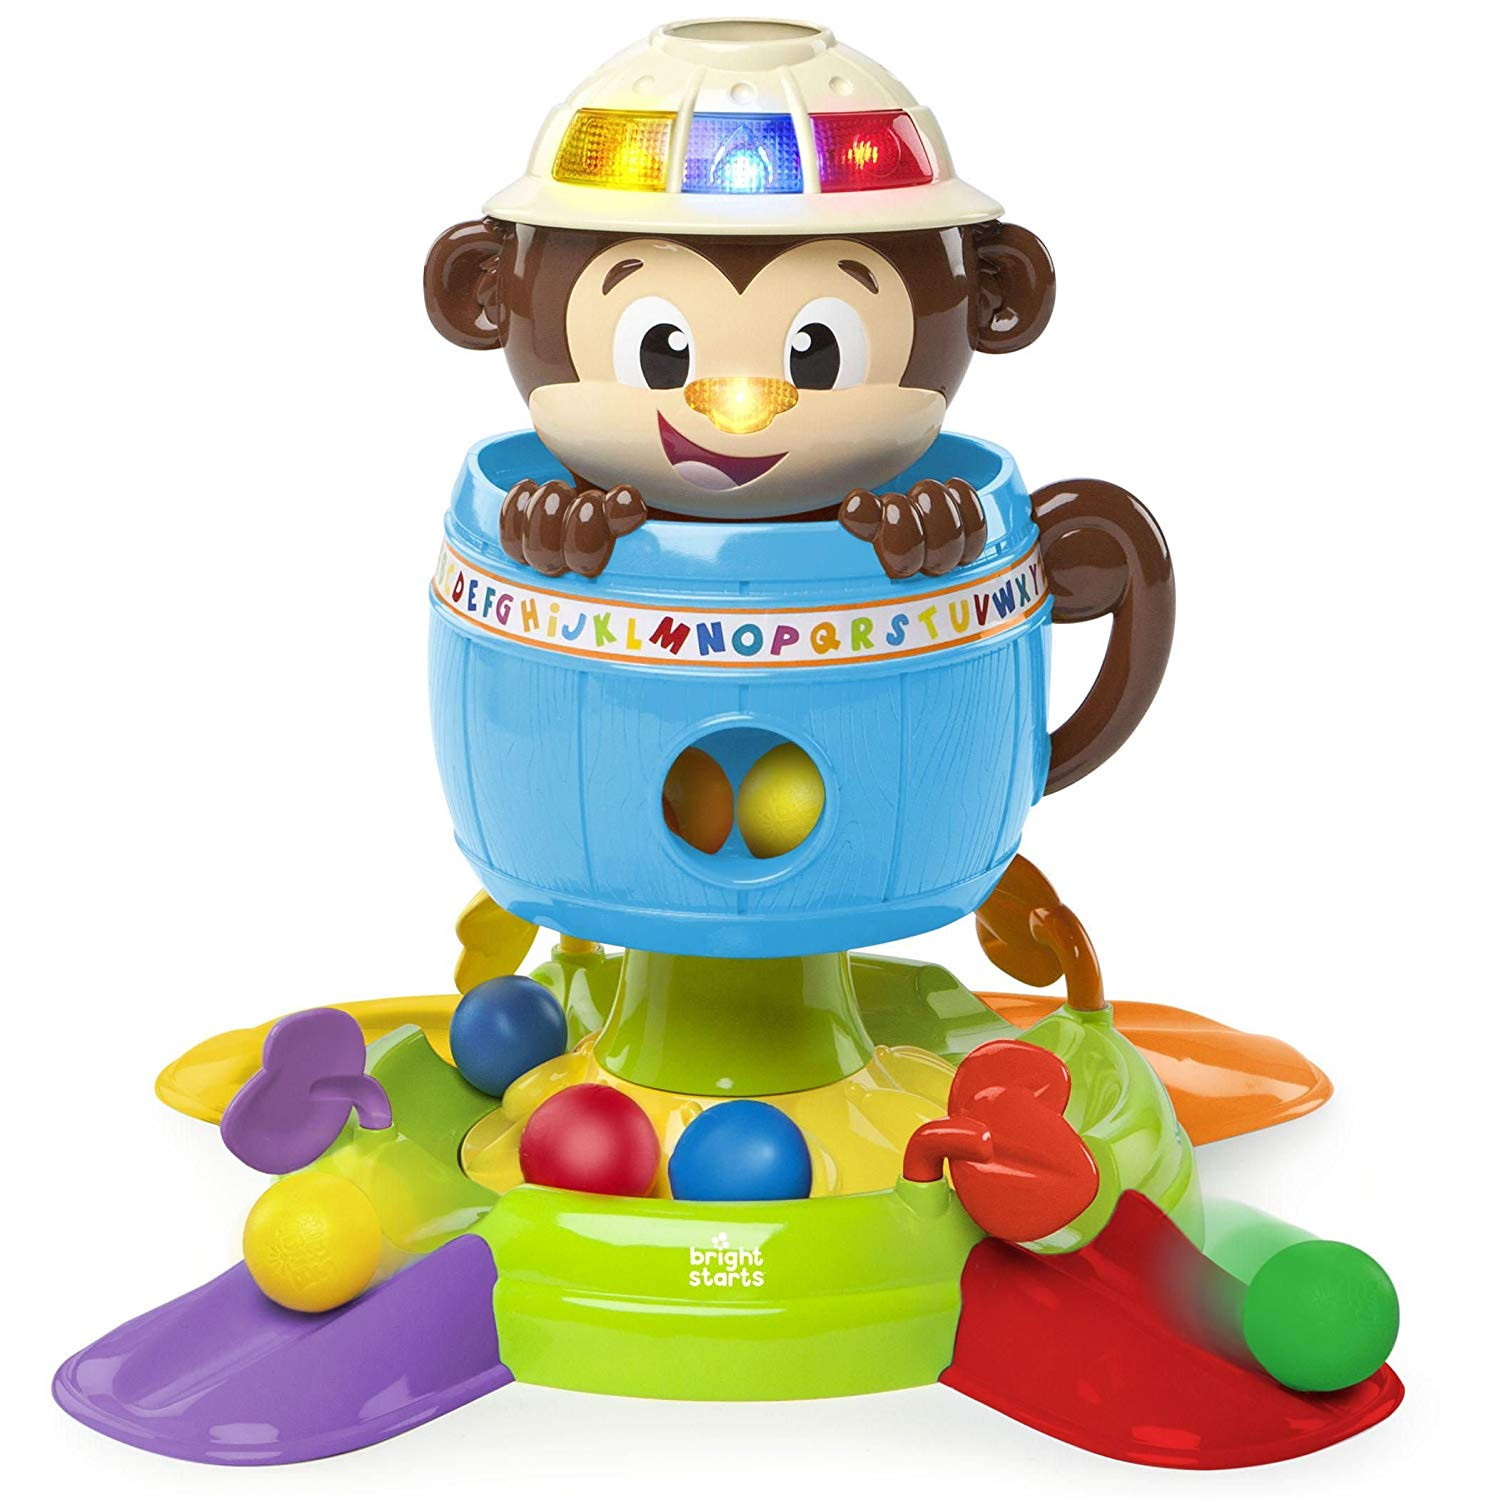 Bright Starts Baby Toy, Hide n Spin Monkey